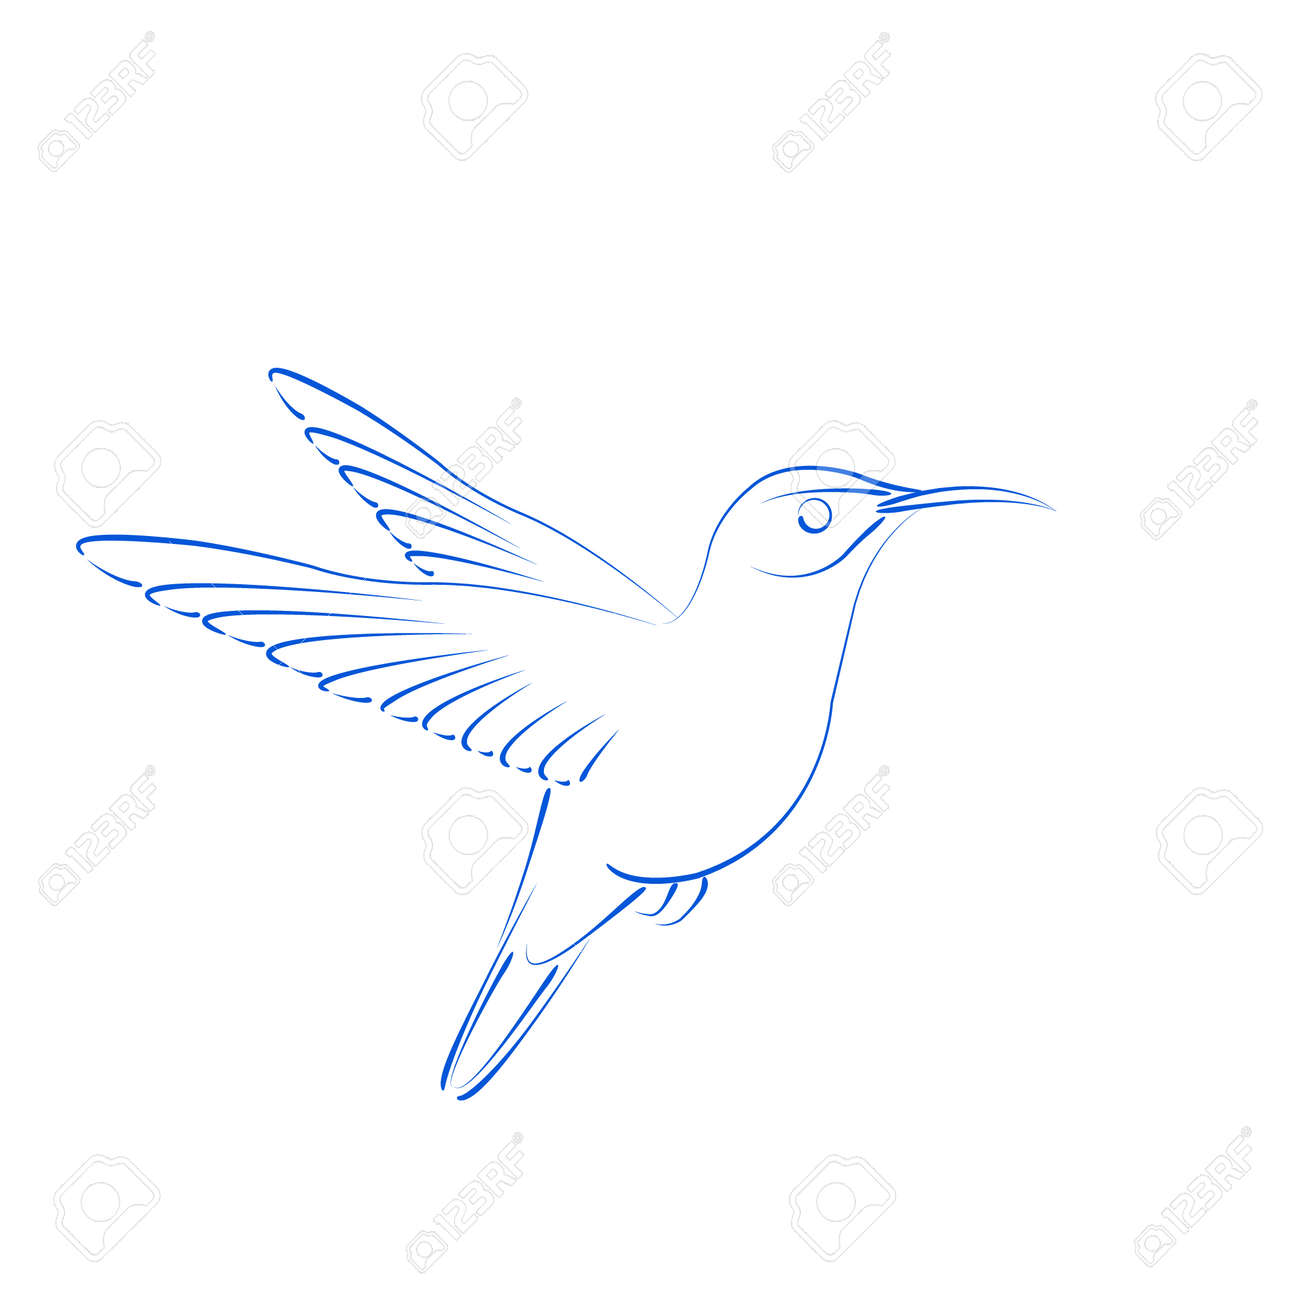 sketched hummingbird colibri isolated on white background design